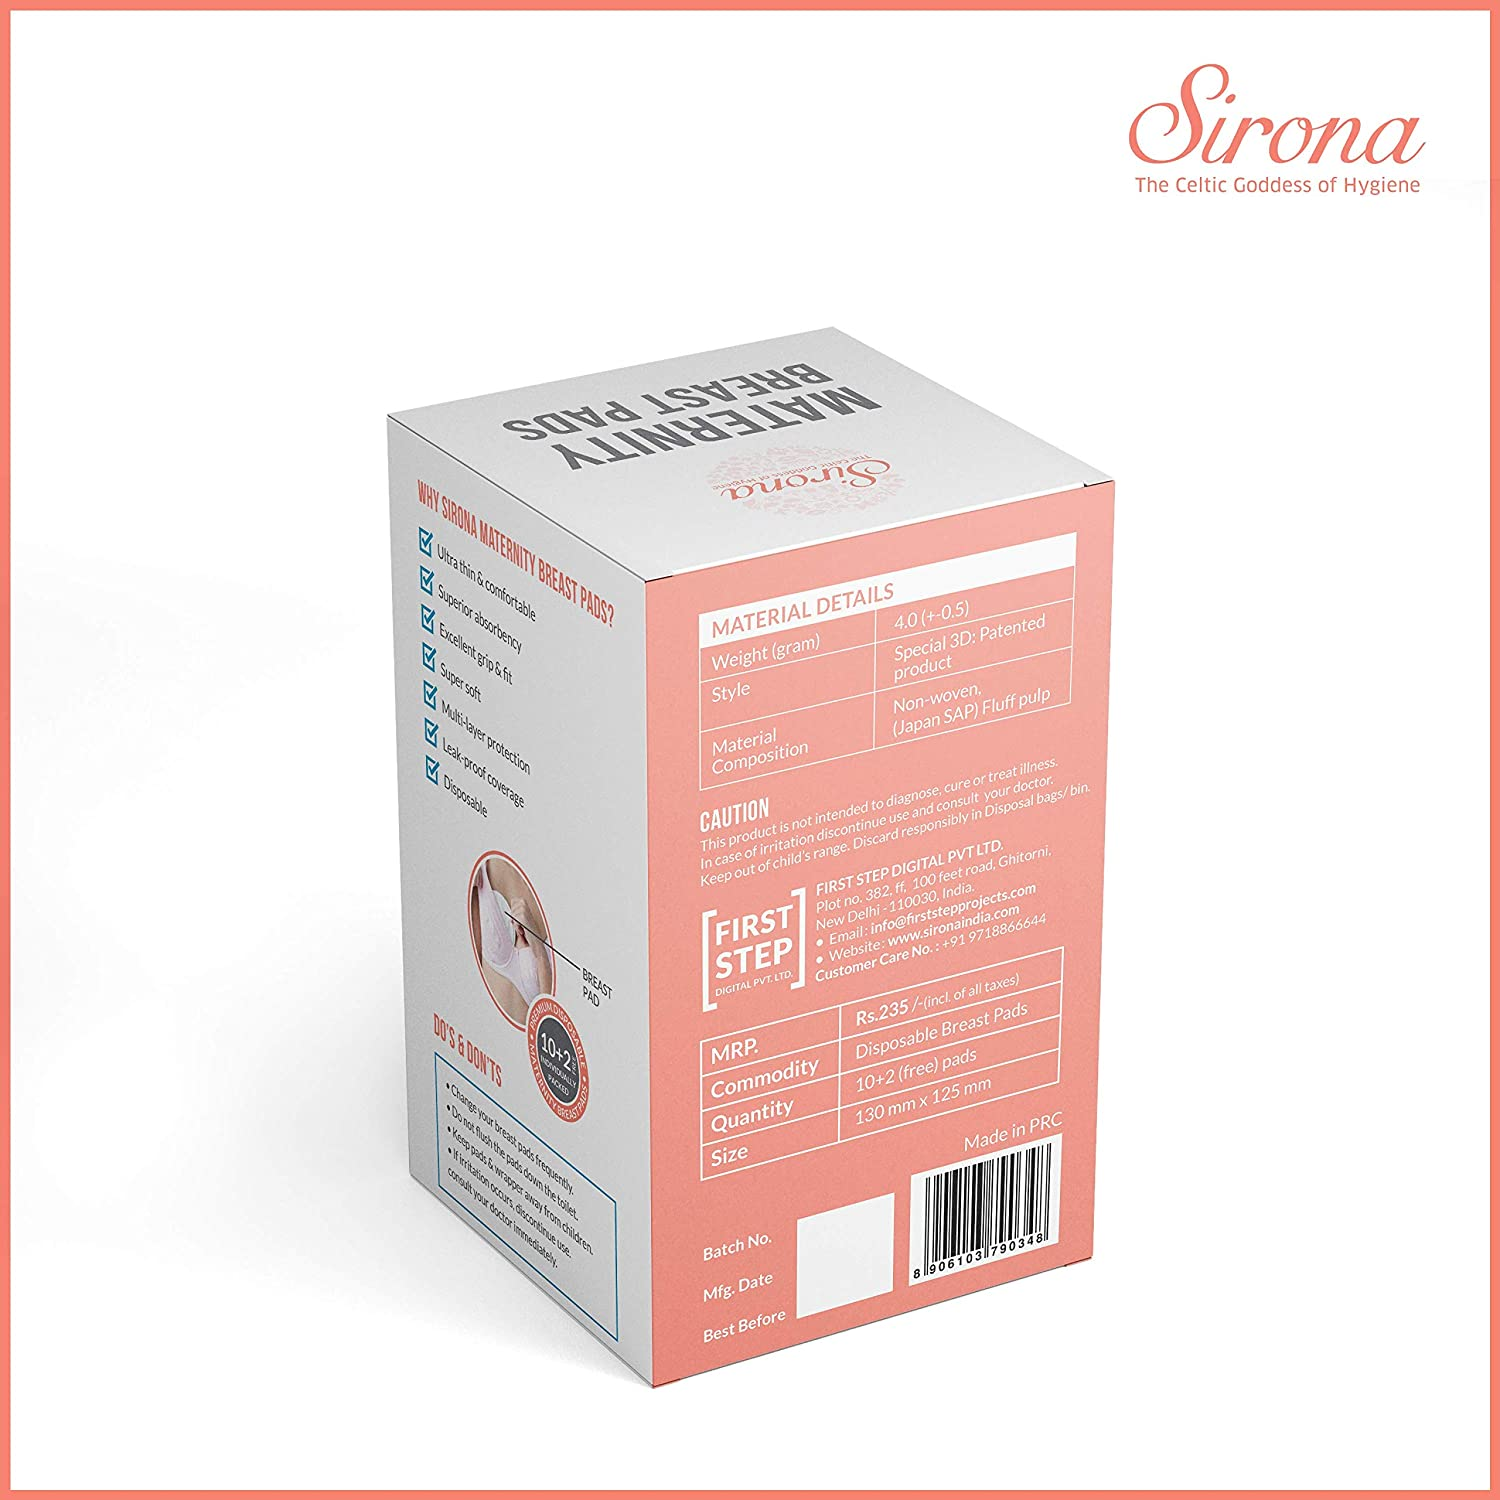 12 Pads Sirona Disposable Maternity and Nursing Breast Pads for Breastfeeding Women